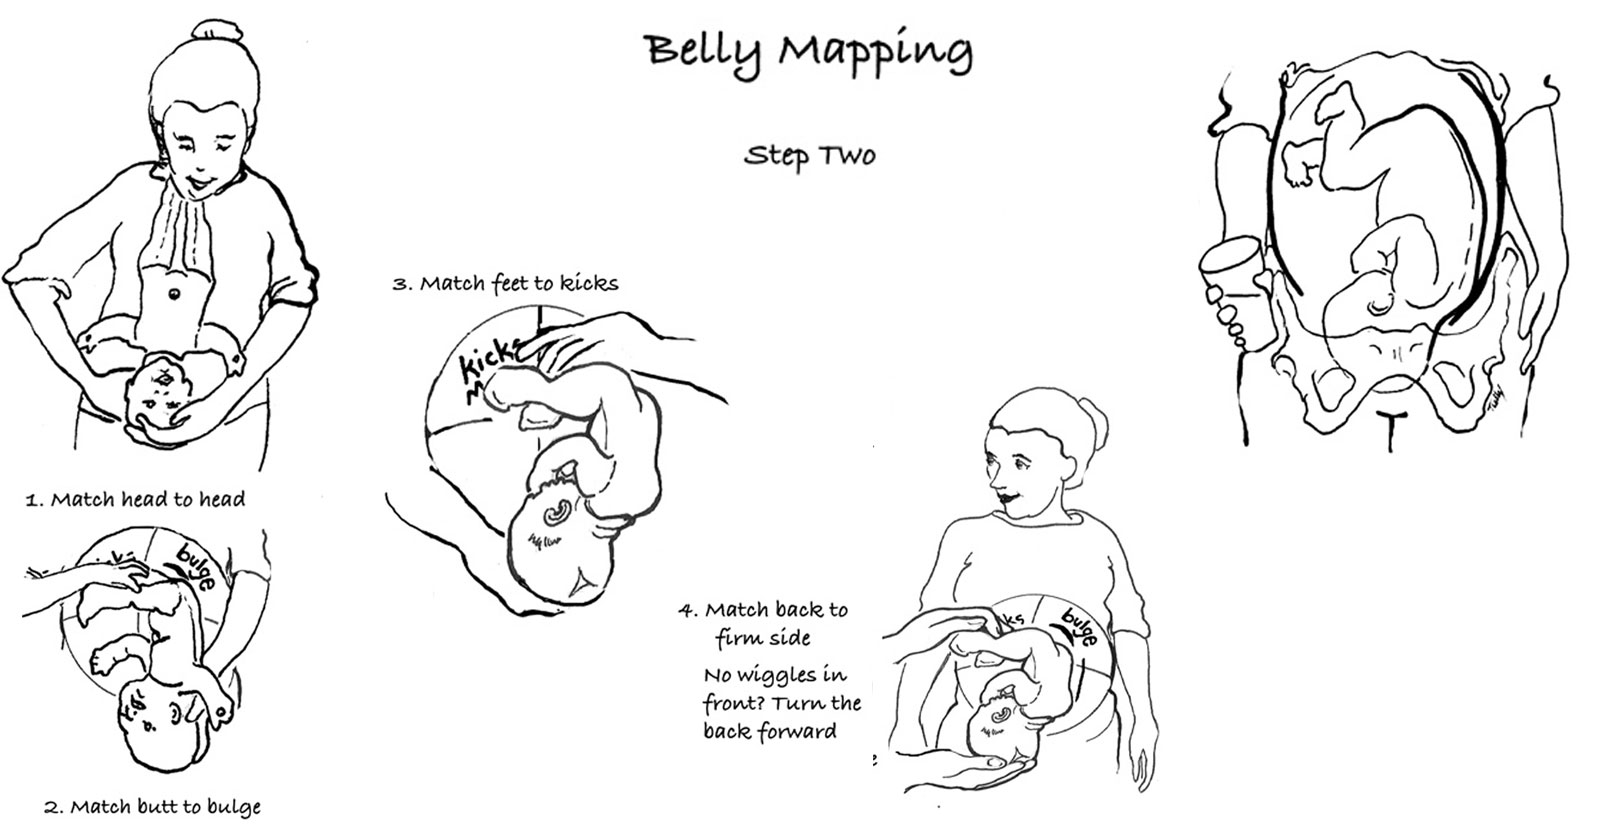 bellymapping